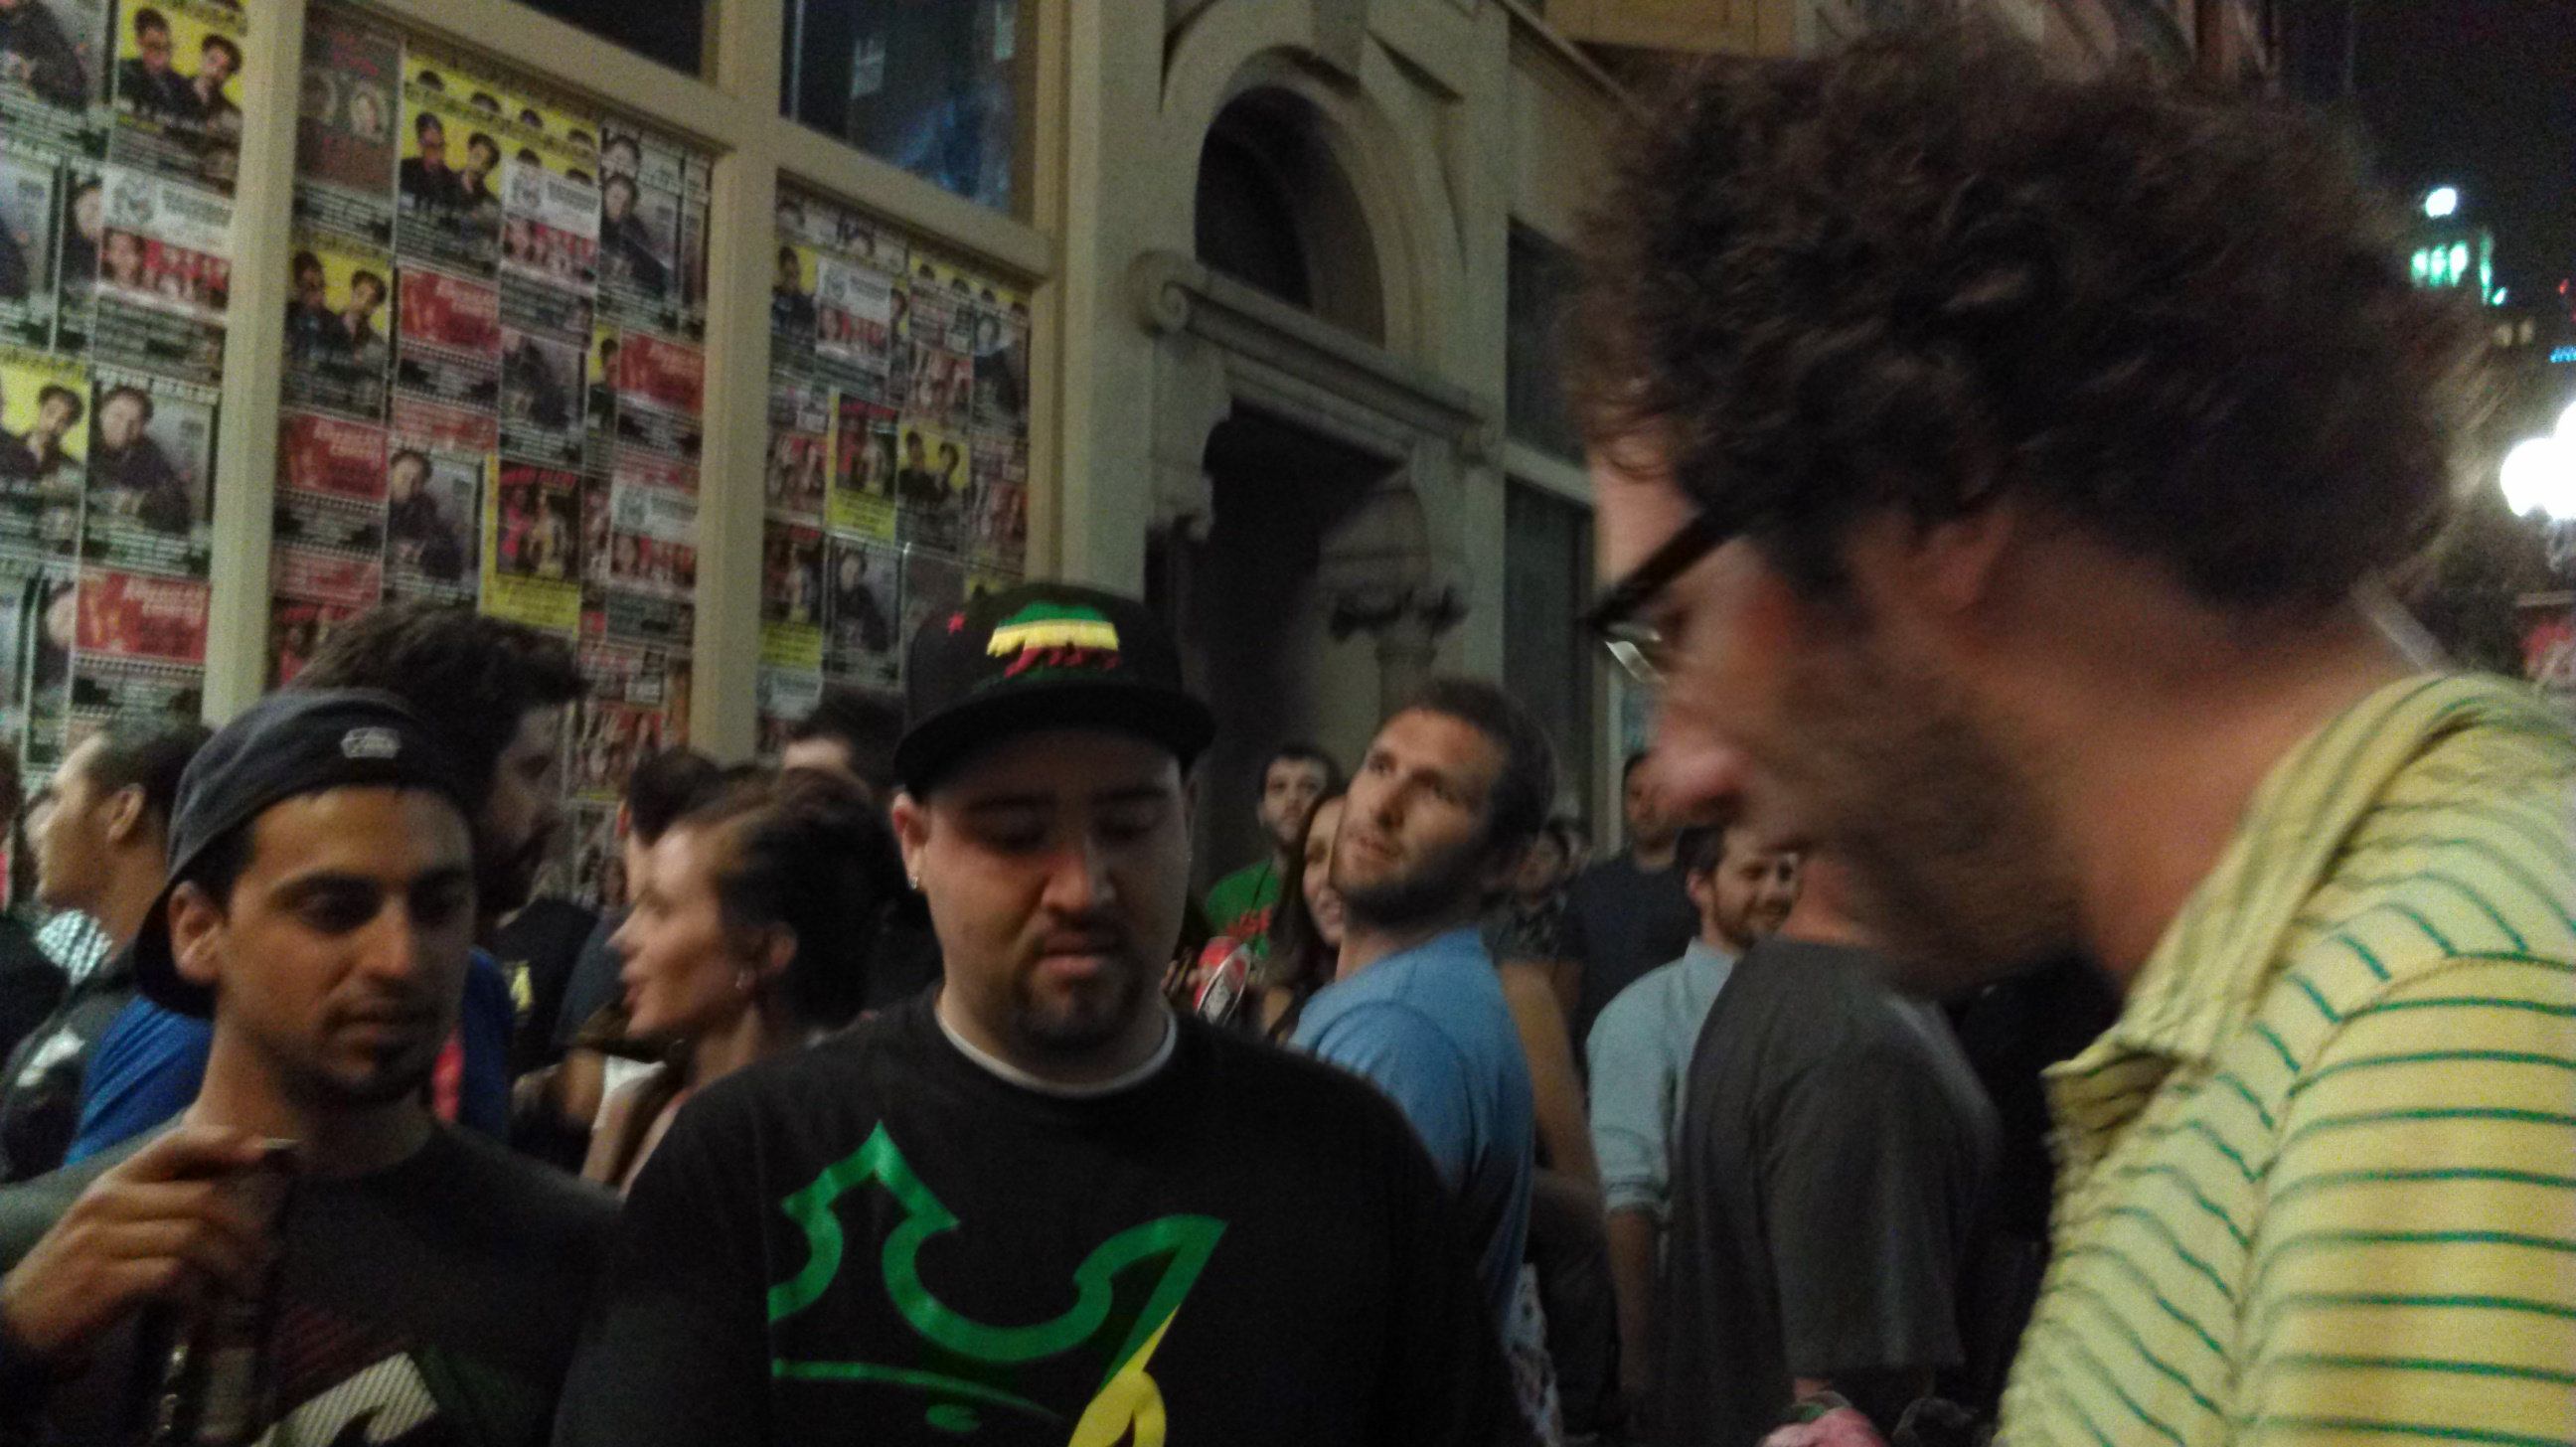 Ari Shaffir and I were slinging shirts out front.